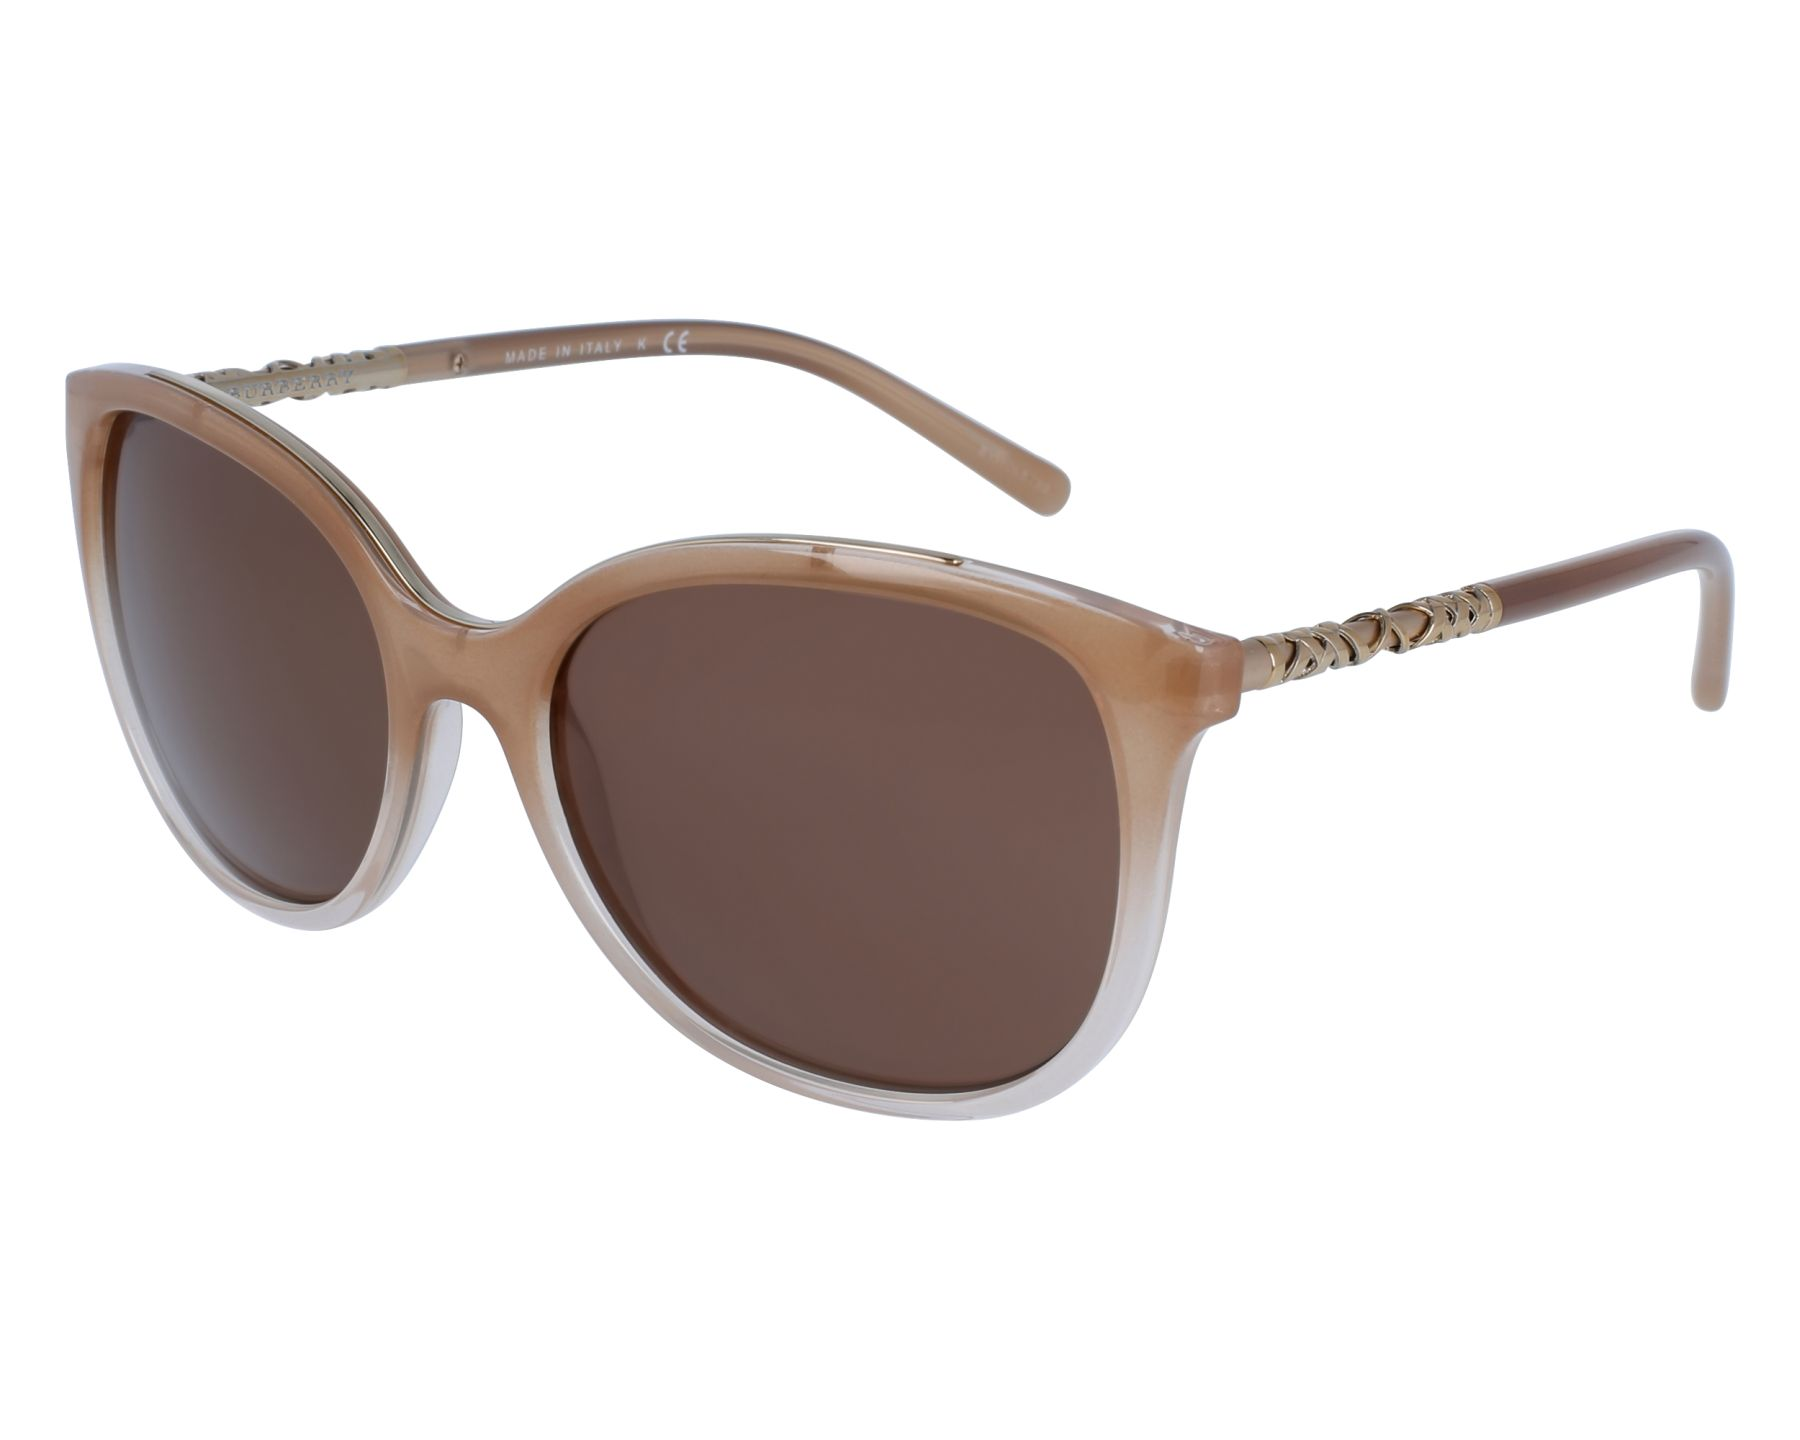 Sunglasses Burberry BE-4237 3354/73 57-18 Beige Gold front view